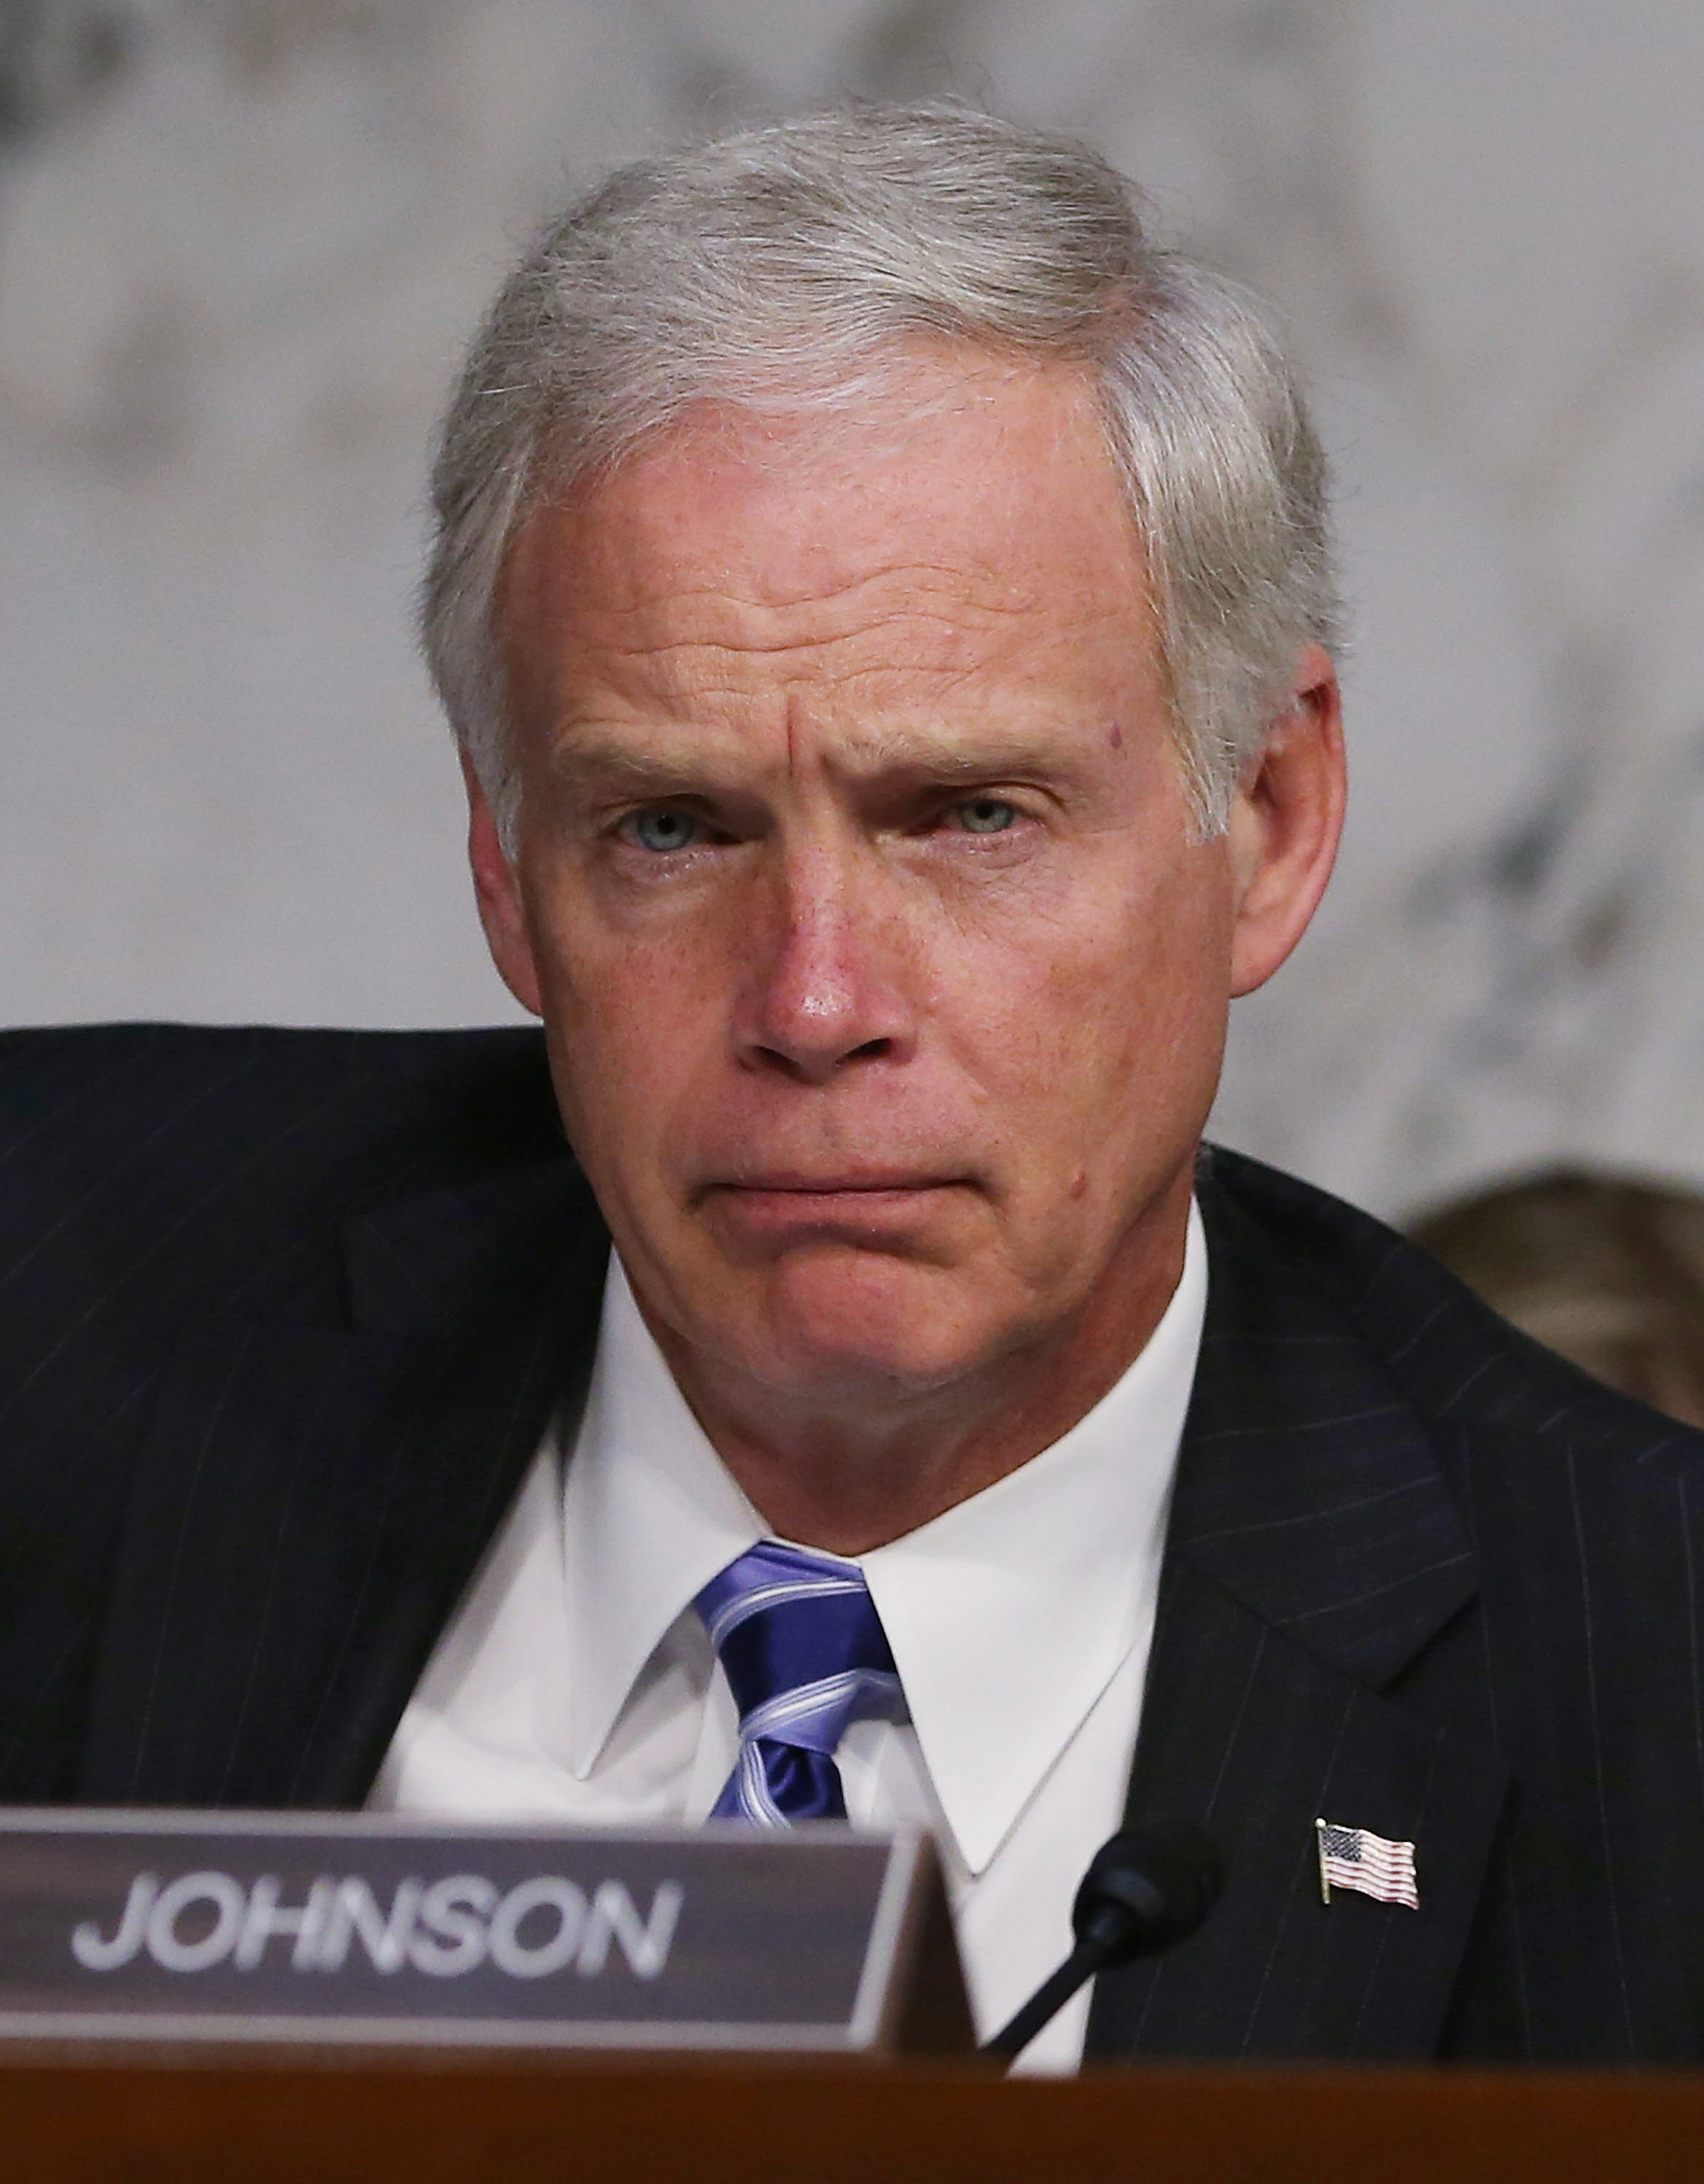 ron johnson As she began her tenure as ceo she basically said hp won't make  don't get  too confident ron johnson and his leadership team at jc penney were very  confident after a successful stint at apple, johnson believed he knew the  his  successor will bring back jcpenney because he will have the.